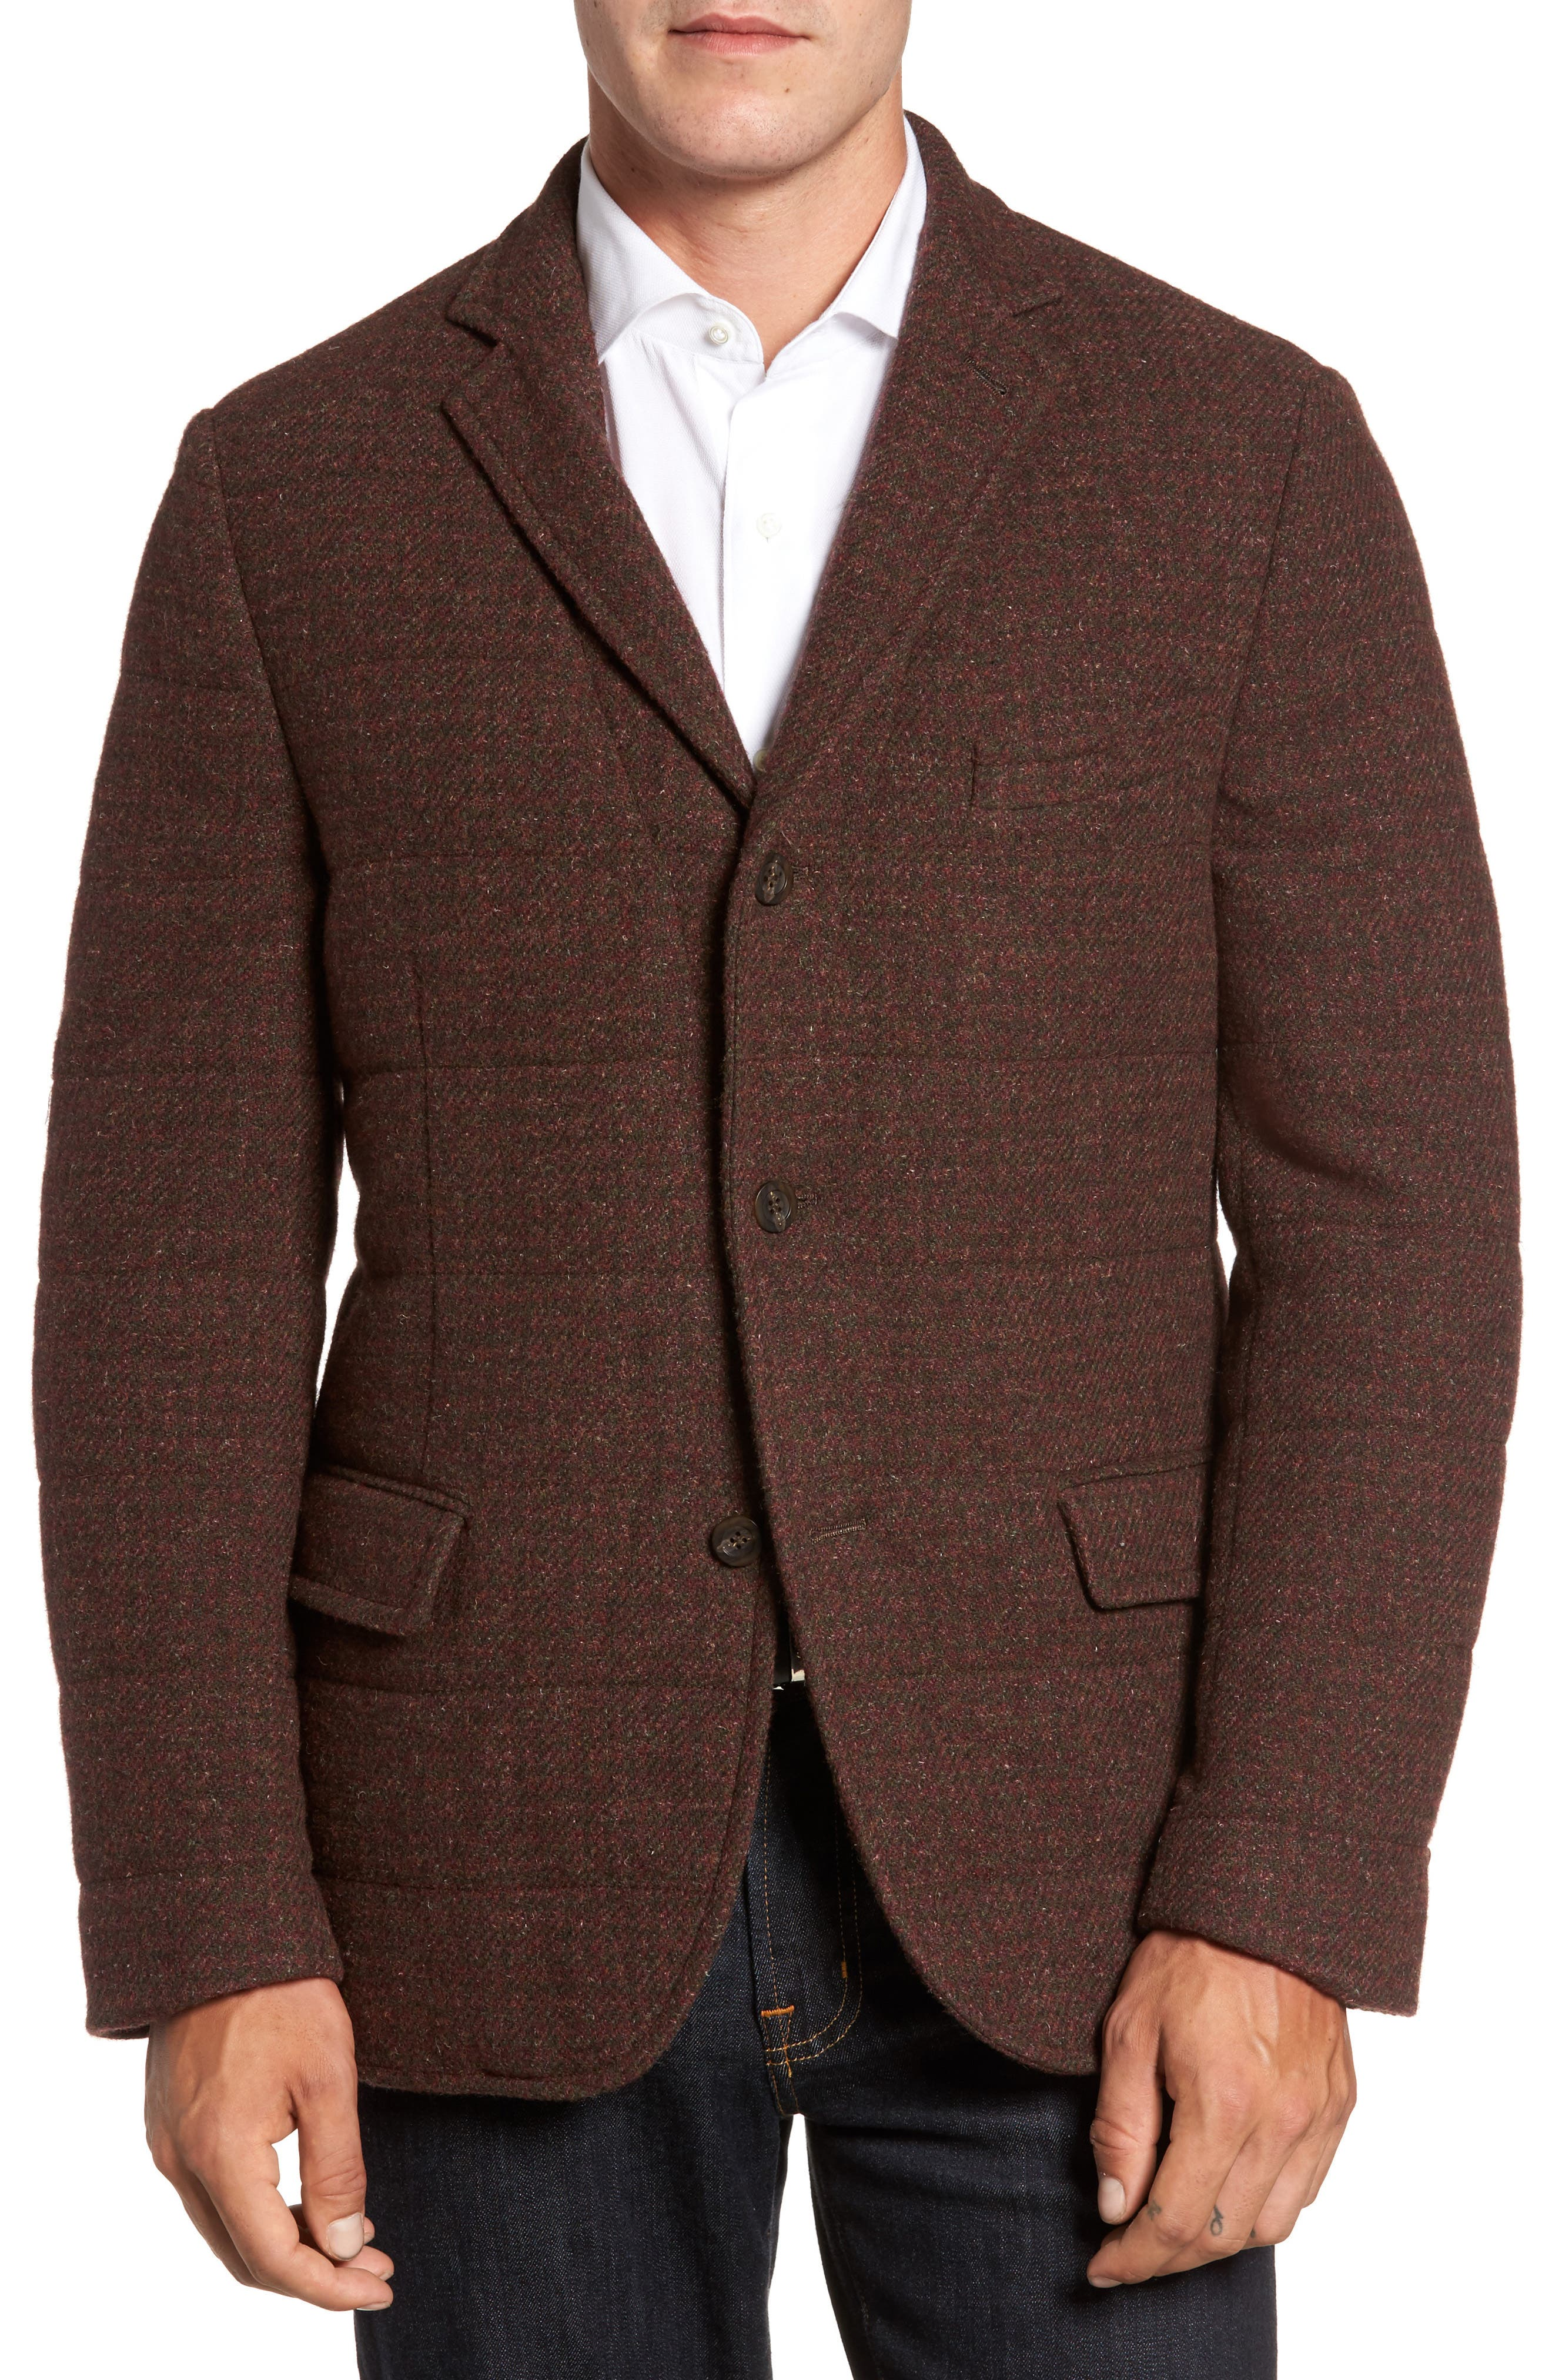 Quilted Wool Blend Hybrid Coat,                             Main thumbnail 1, color,                             220